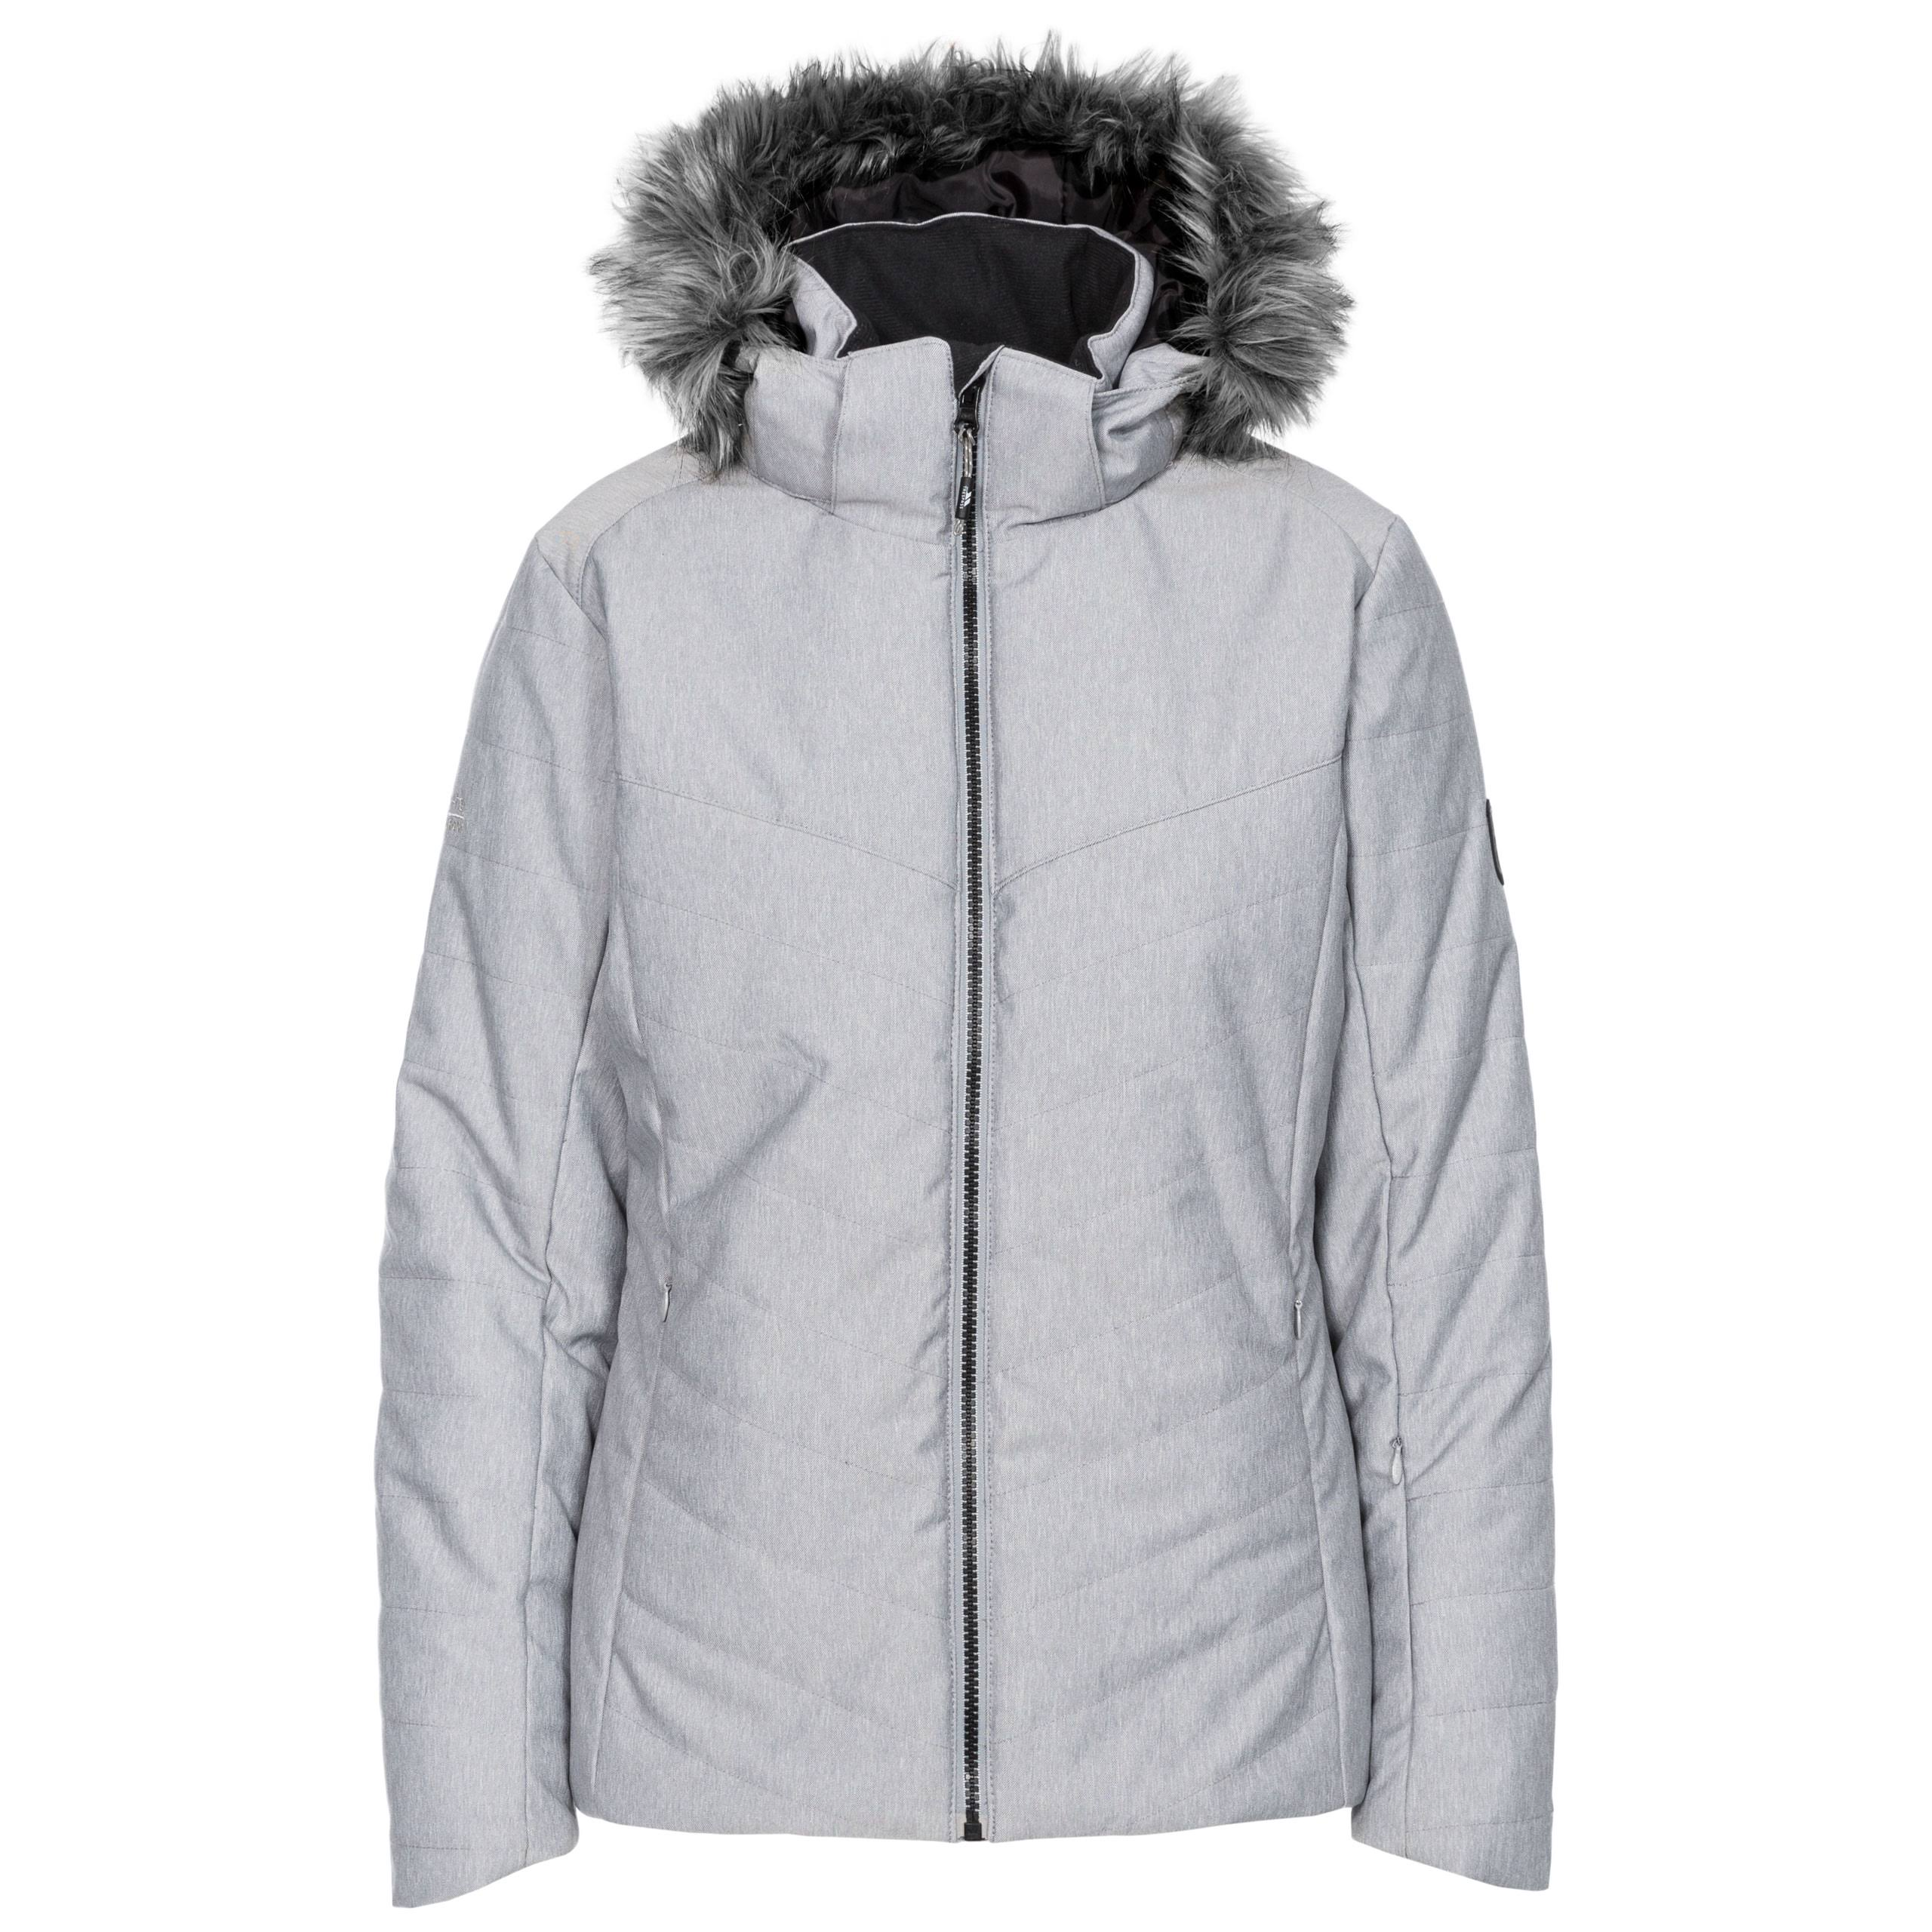 Womens Trespass Wisdom Ski Jacket - Grey